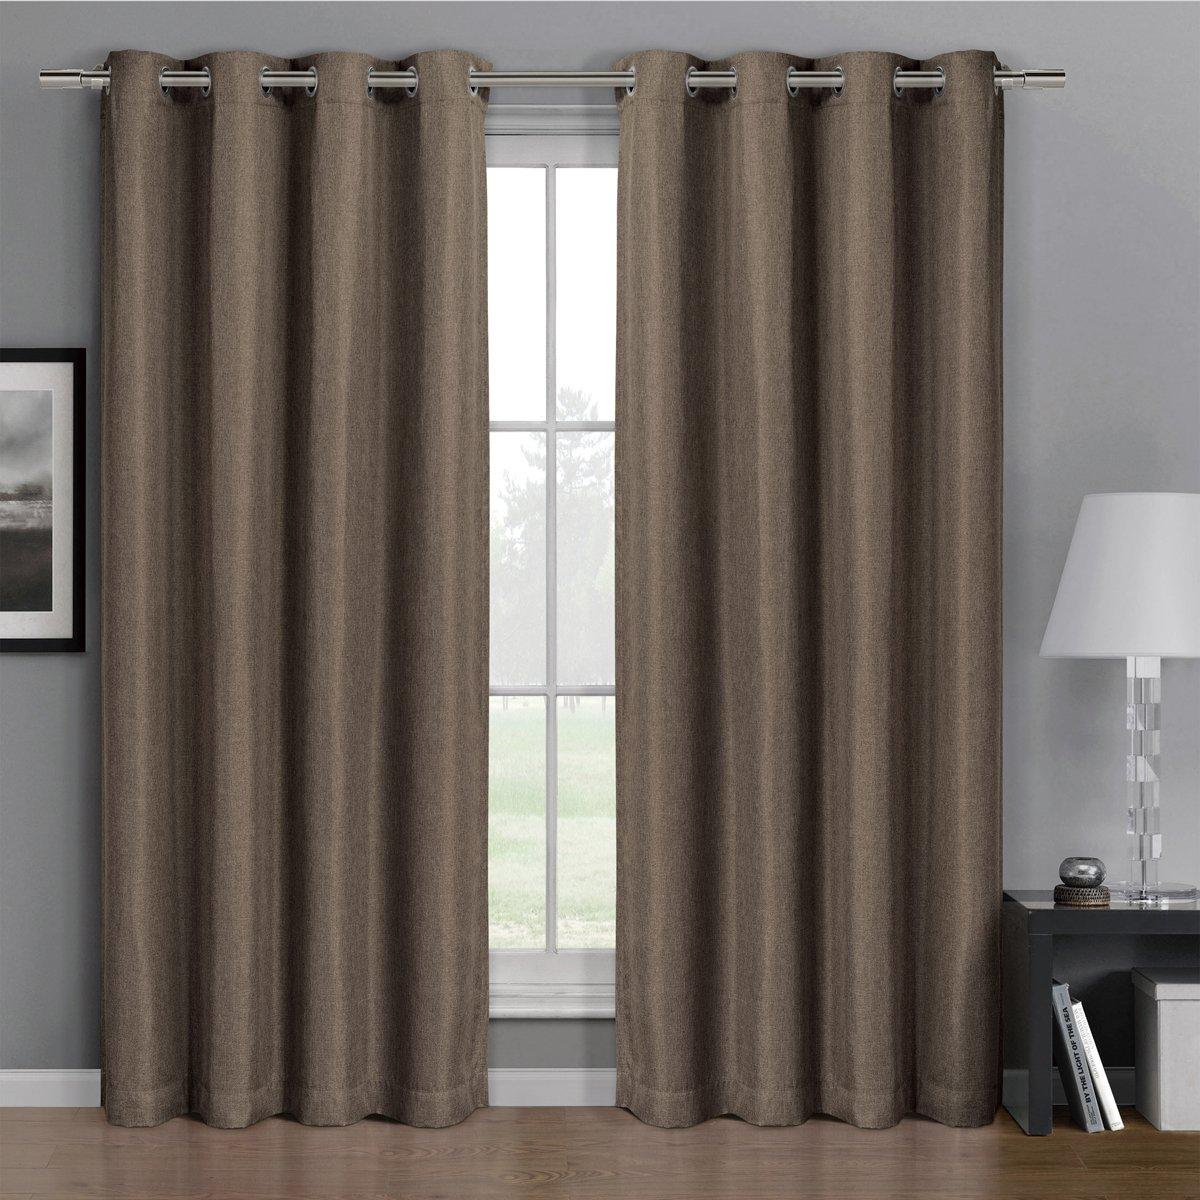 at back deals spliced tab curtains sheer faux decorative find shopping guides cheap patchwork and line window rod deconovo ikea on get quotations linen pocket